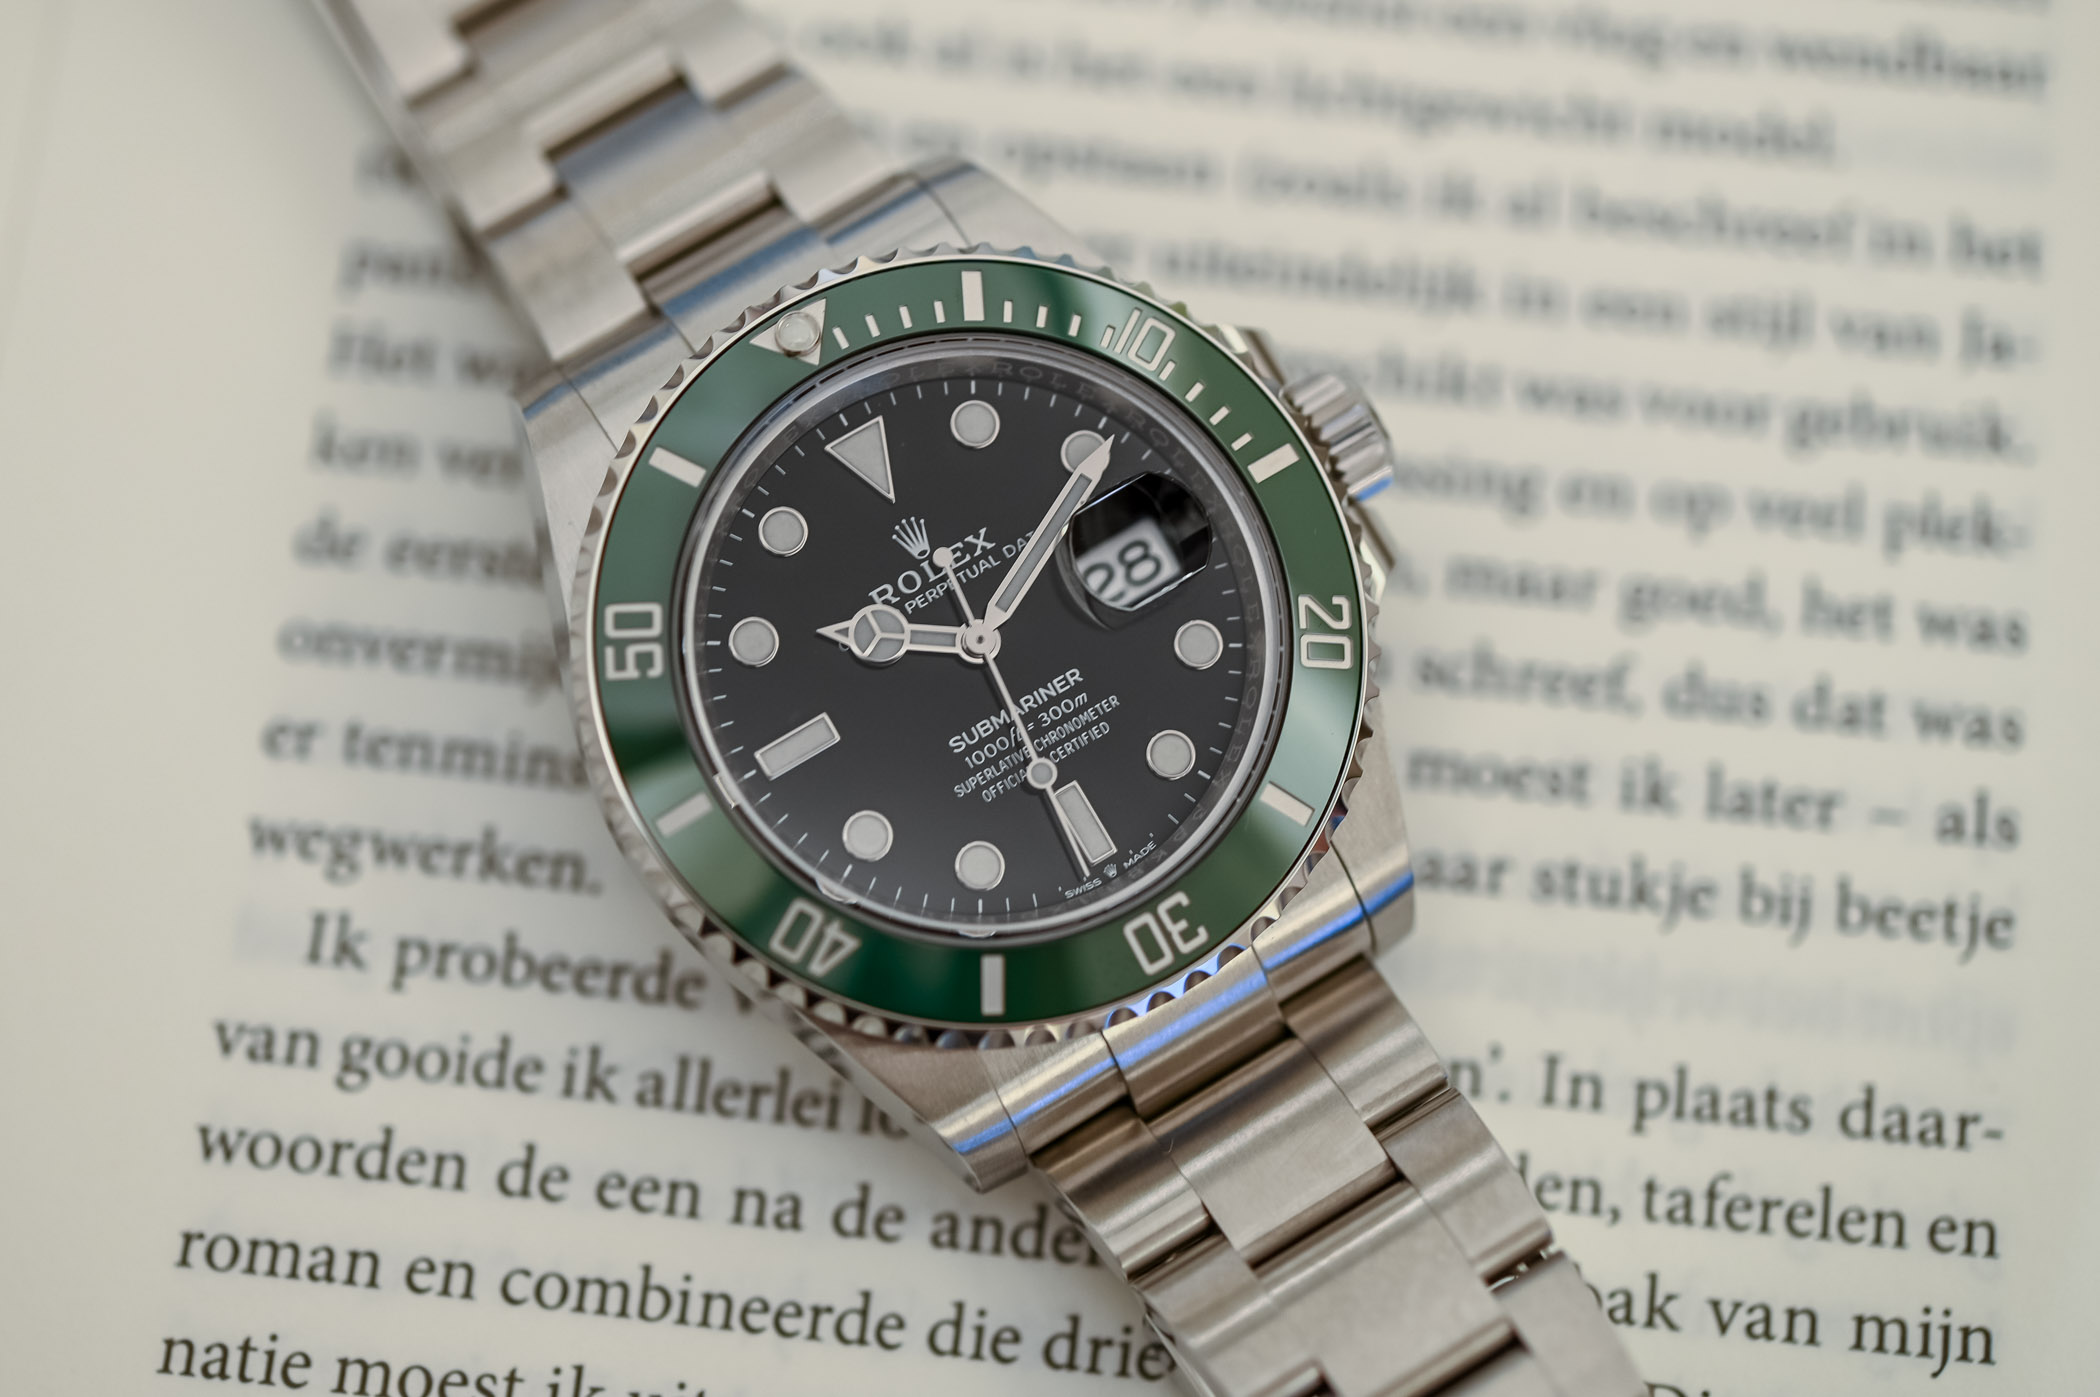 Rolex Submariner Date 41mm Kermit 126610LV and Black 126610LN - 2